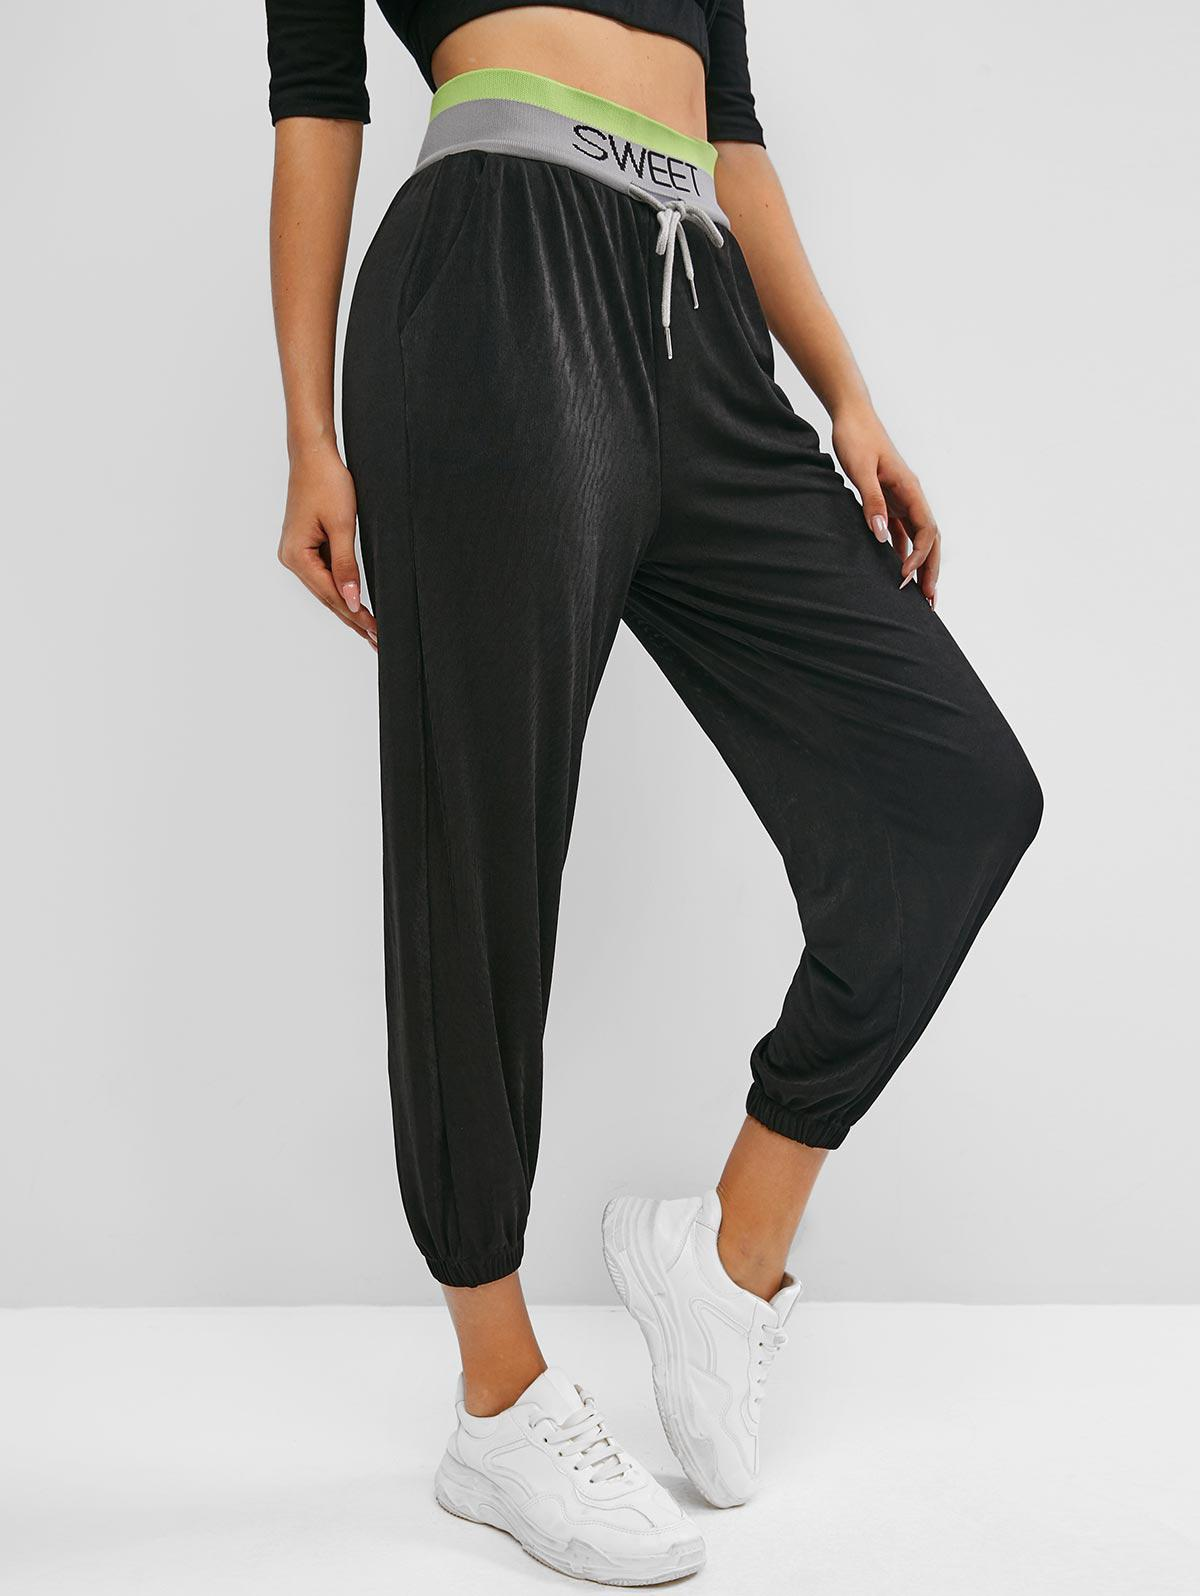 Sweet Graphic High Waisted Jogger Pants